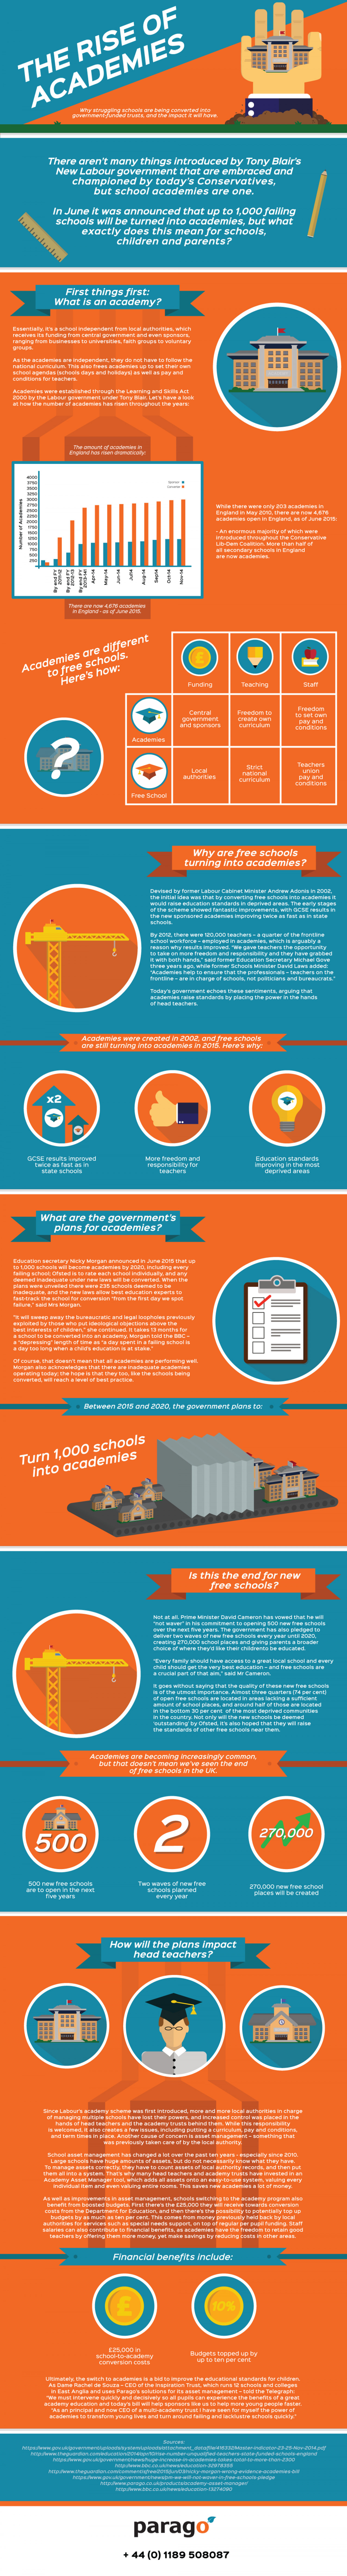 The Rise of Academies Infographic